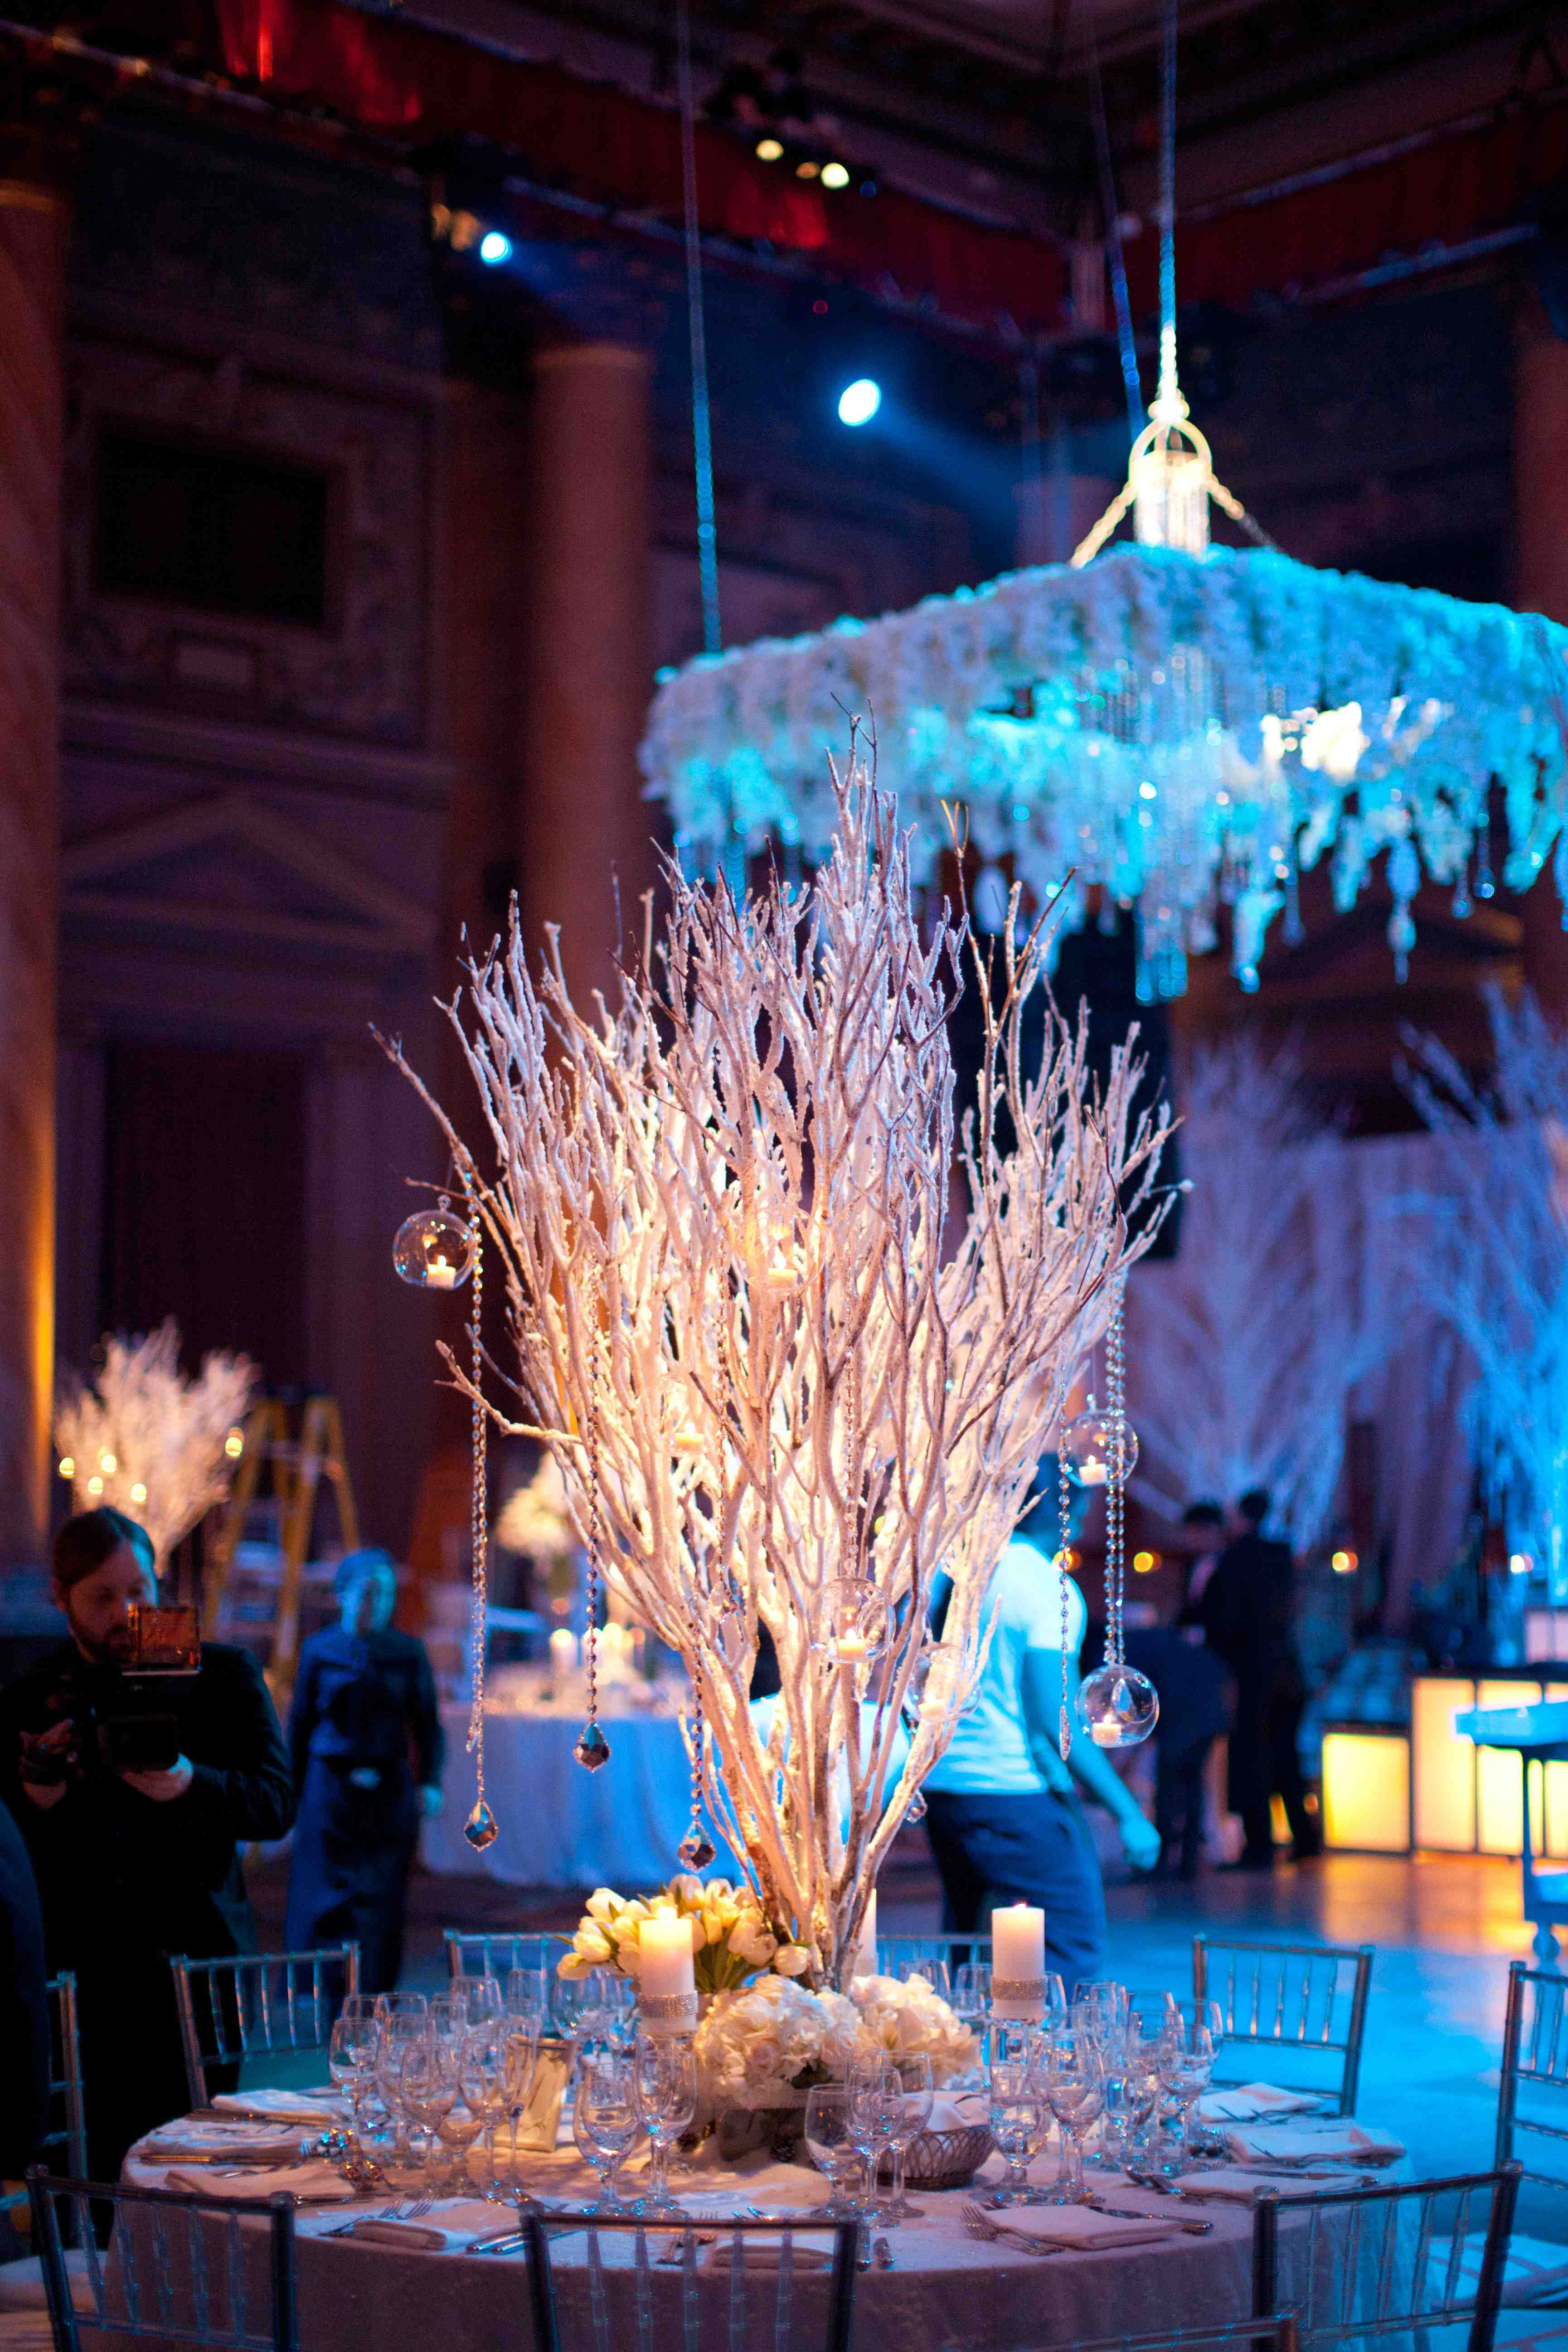 White winter wedding reception with blue lighting